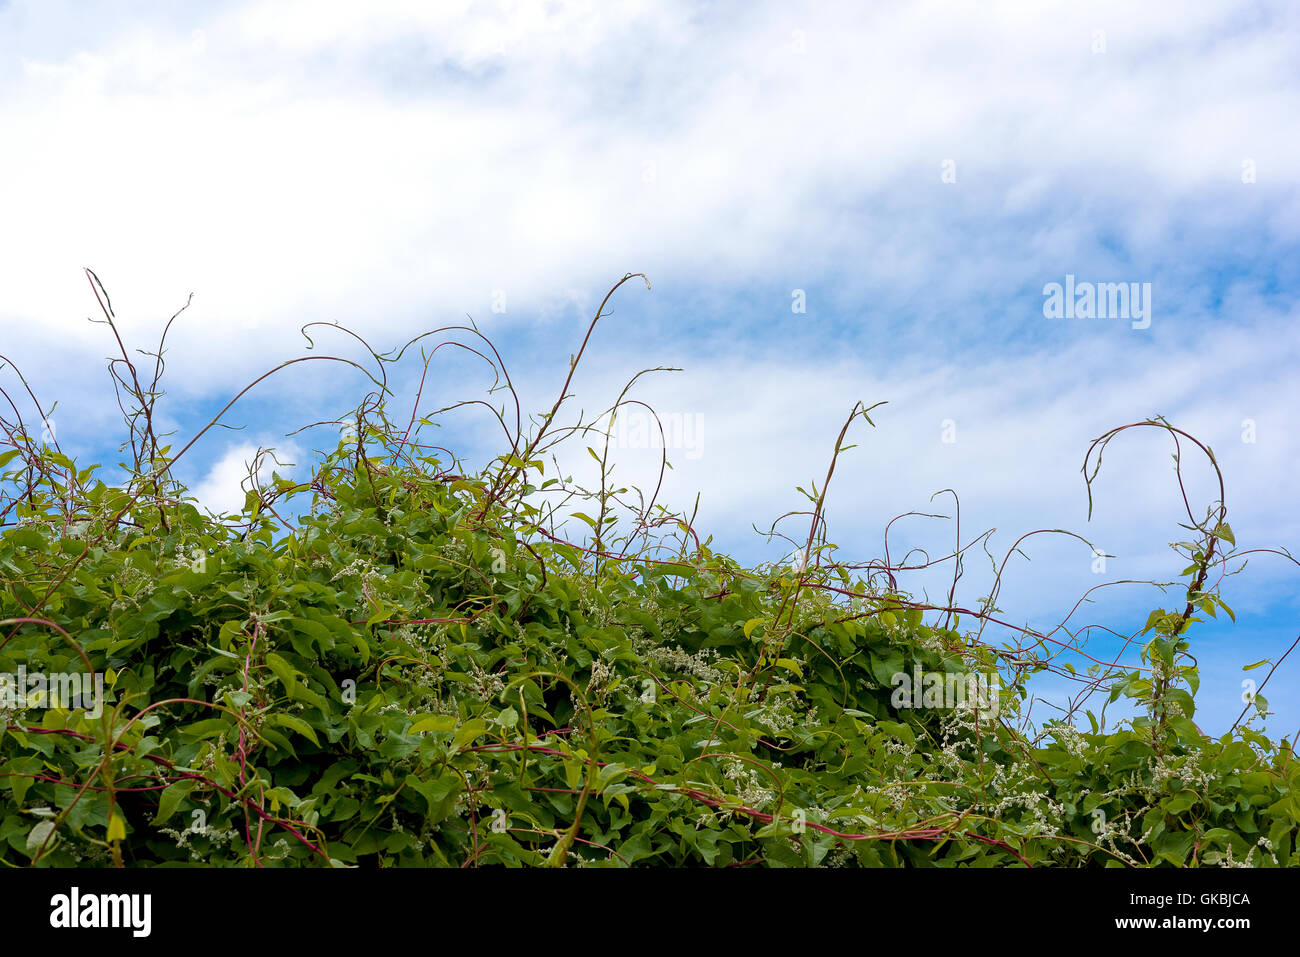 Hedgerow plants with tendrils reaching skyward blue sky with light cloud - Stock Image